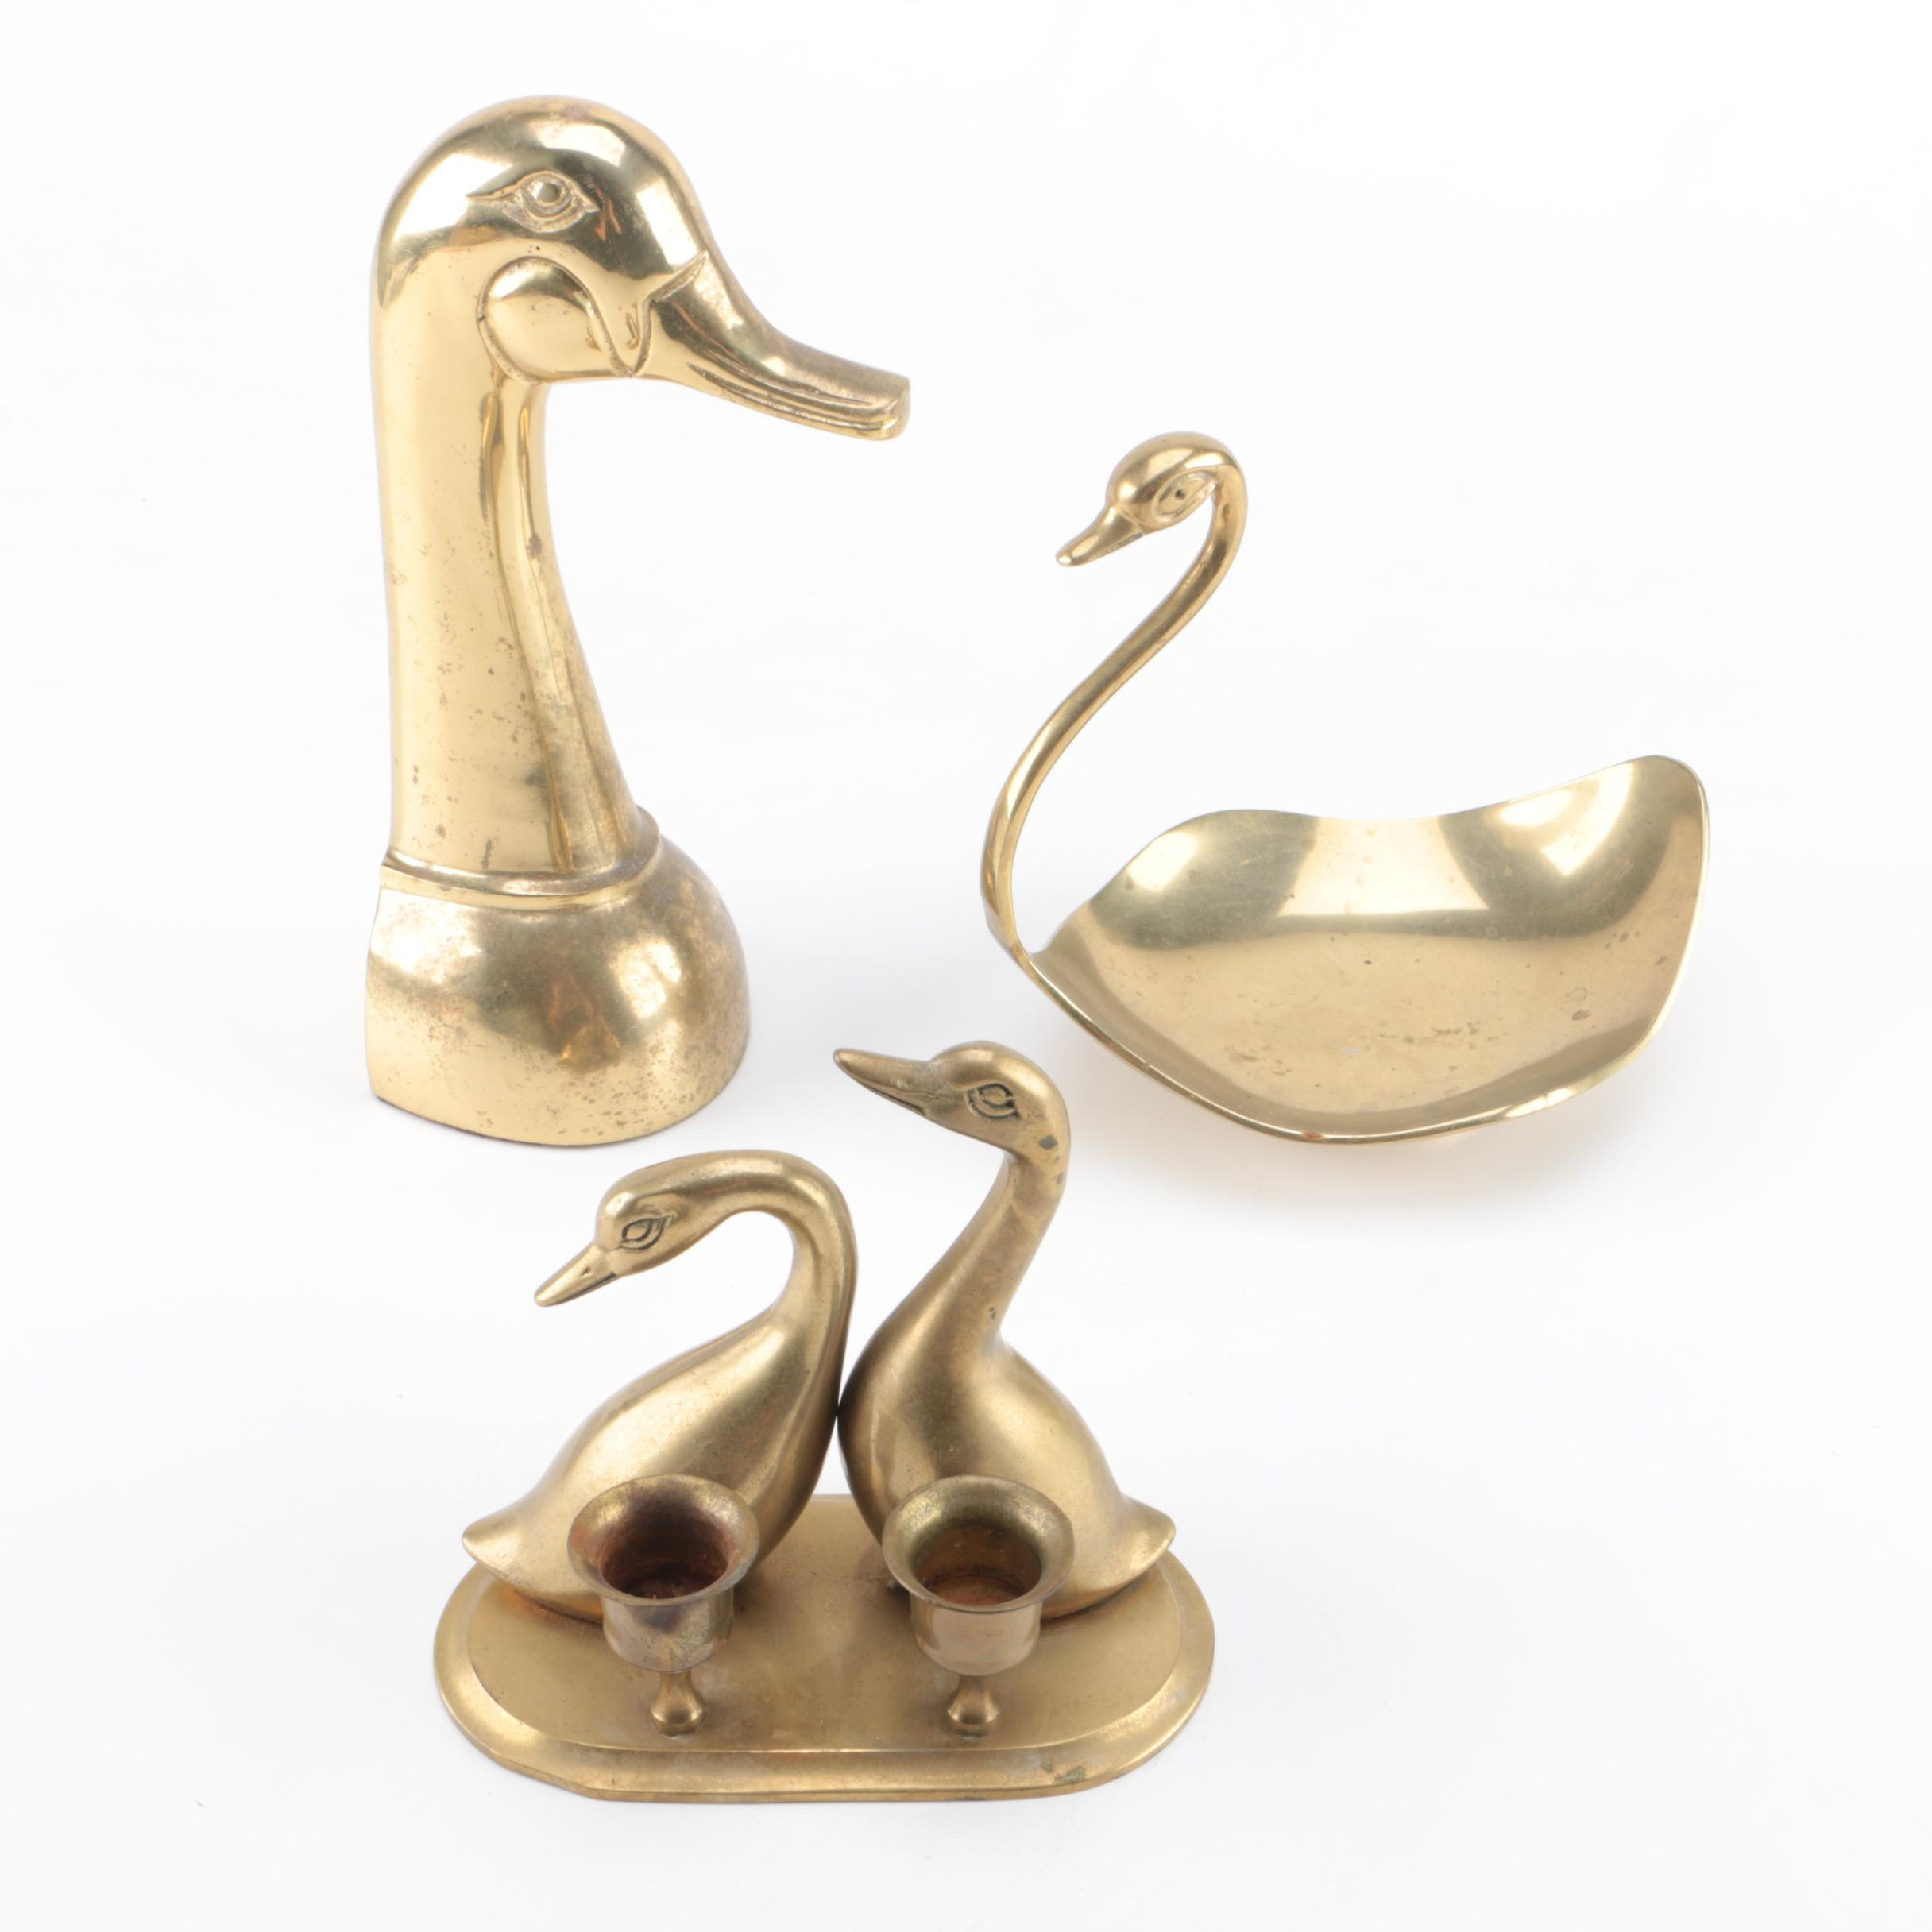 Brass Duck Themed Candle Holder, Dish and Bookend